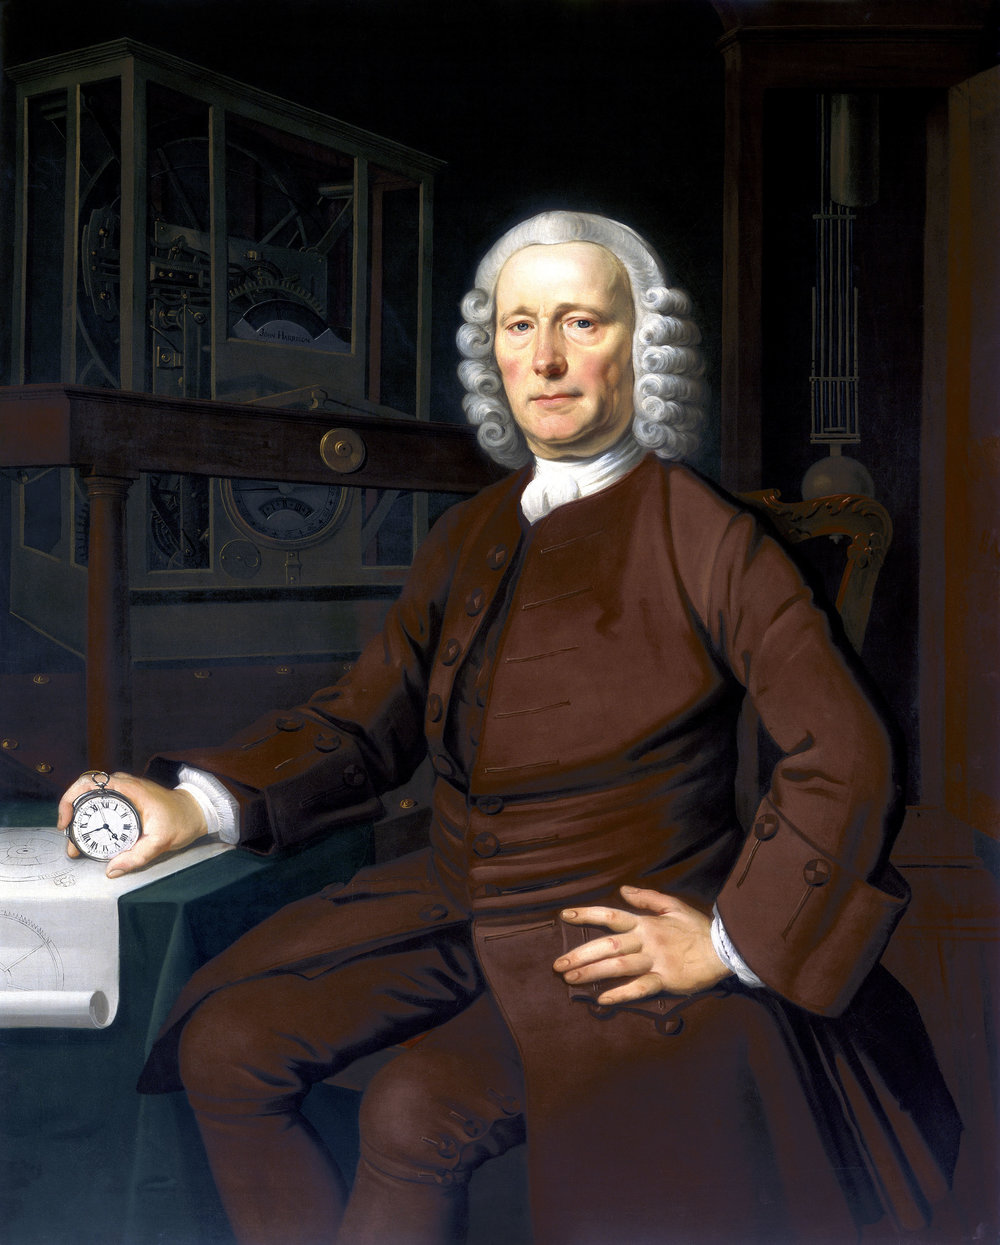 The first practical marine timekeeper for longitude navigation was completed by John Harrison in 1759